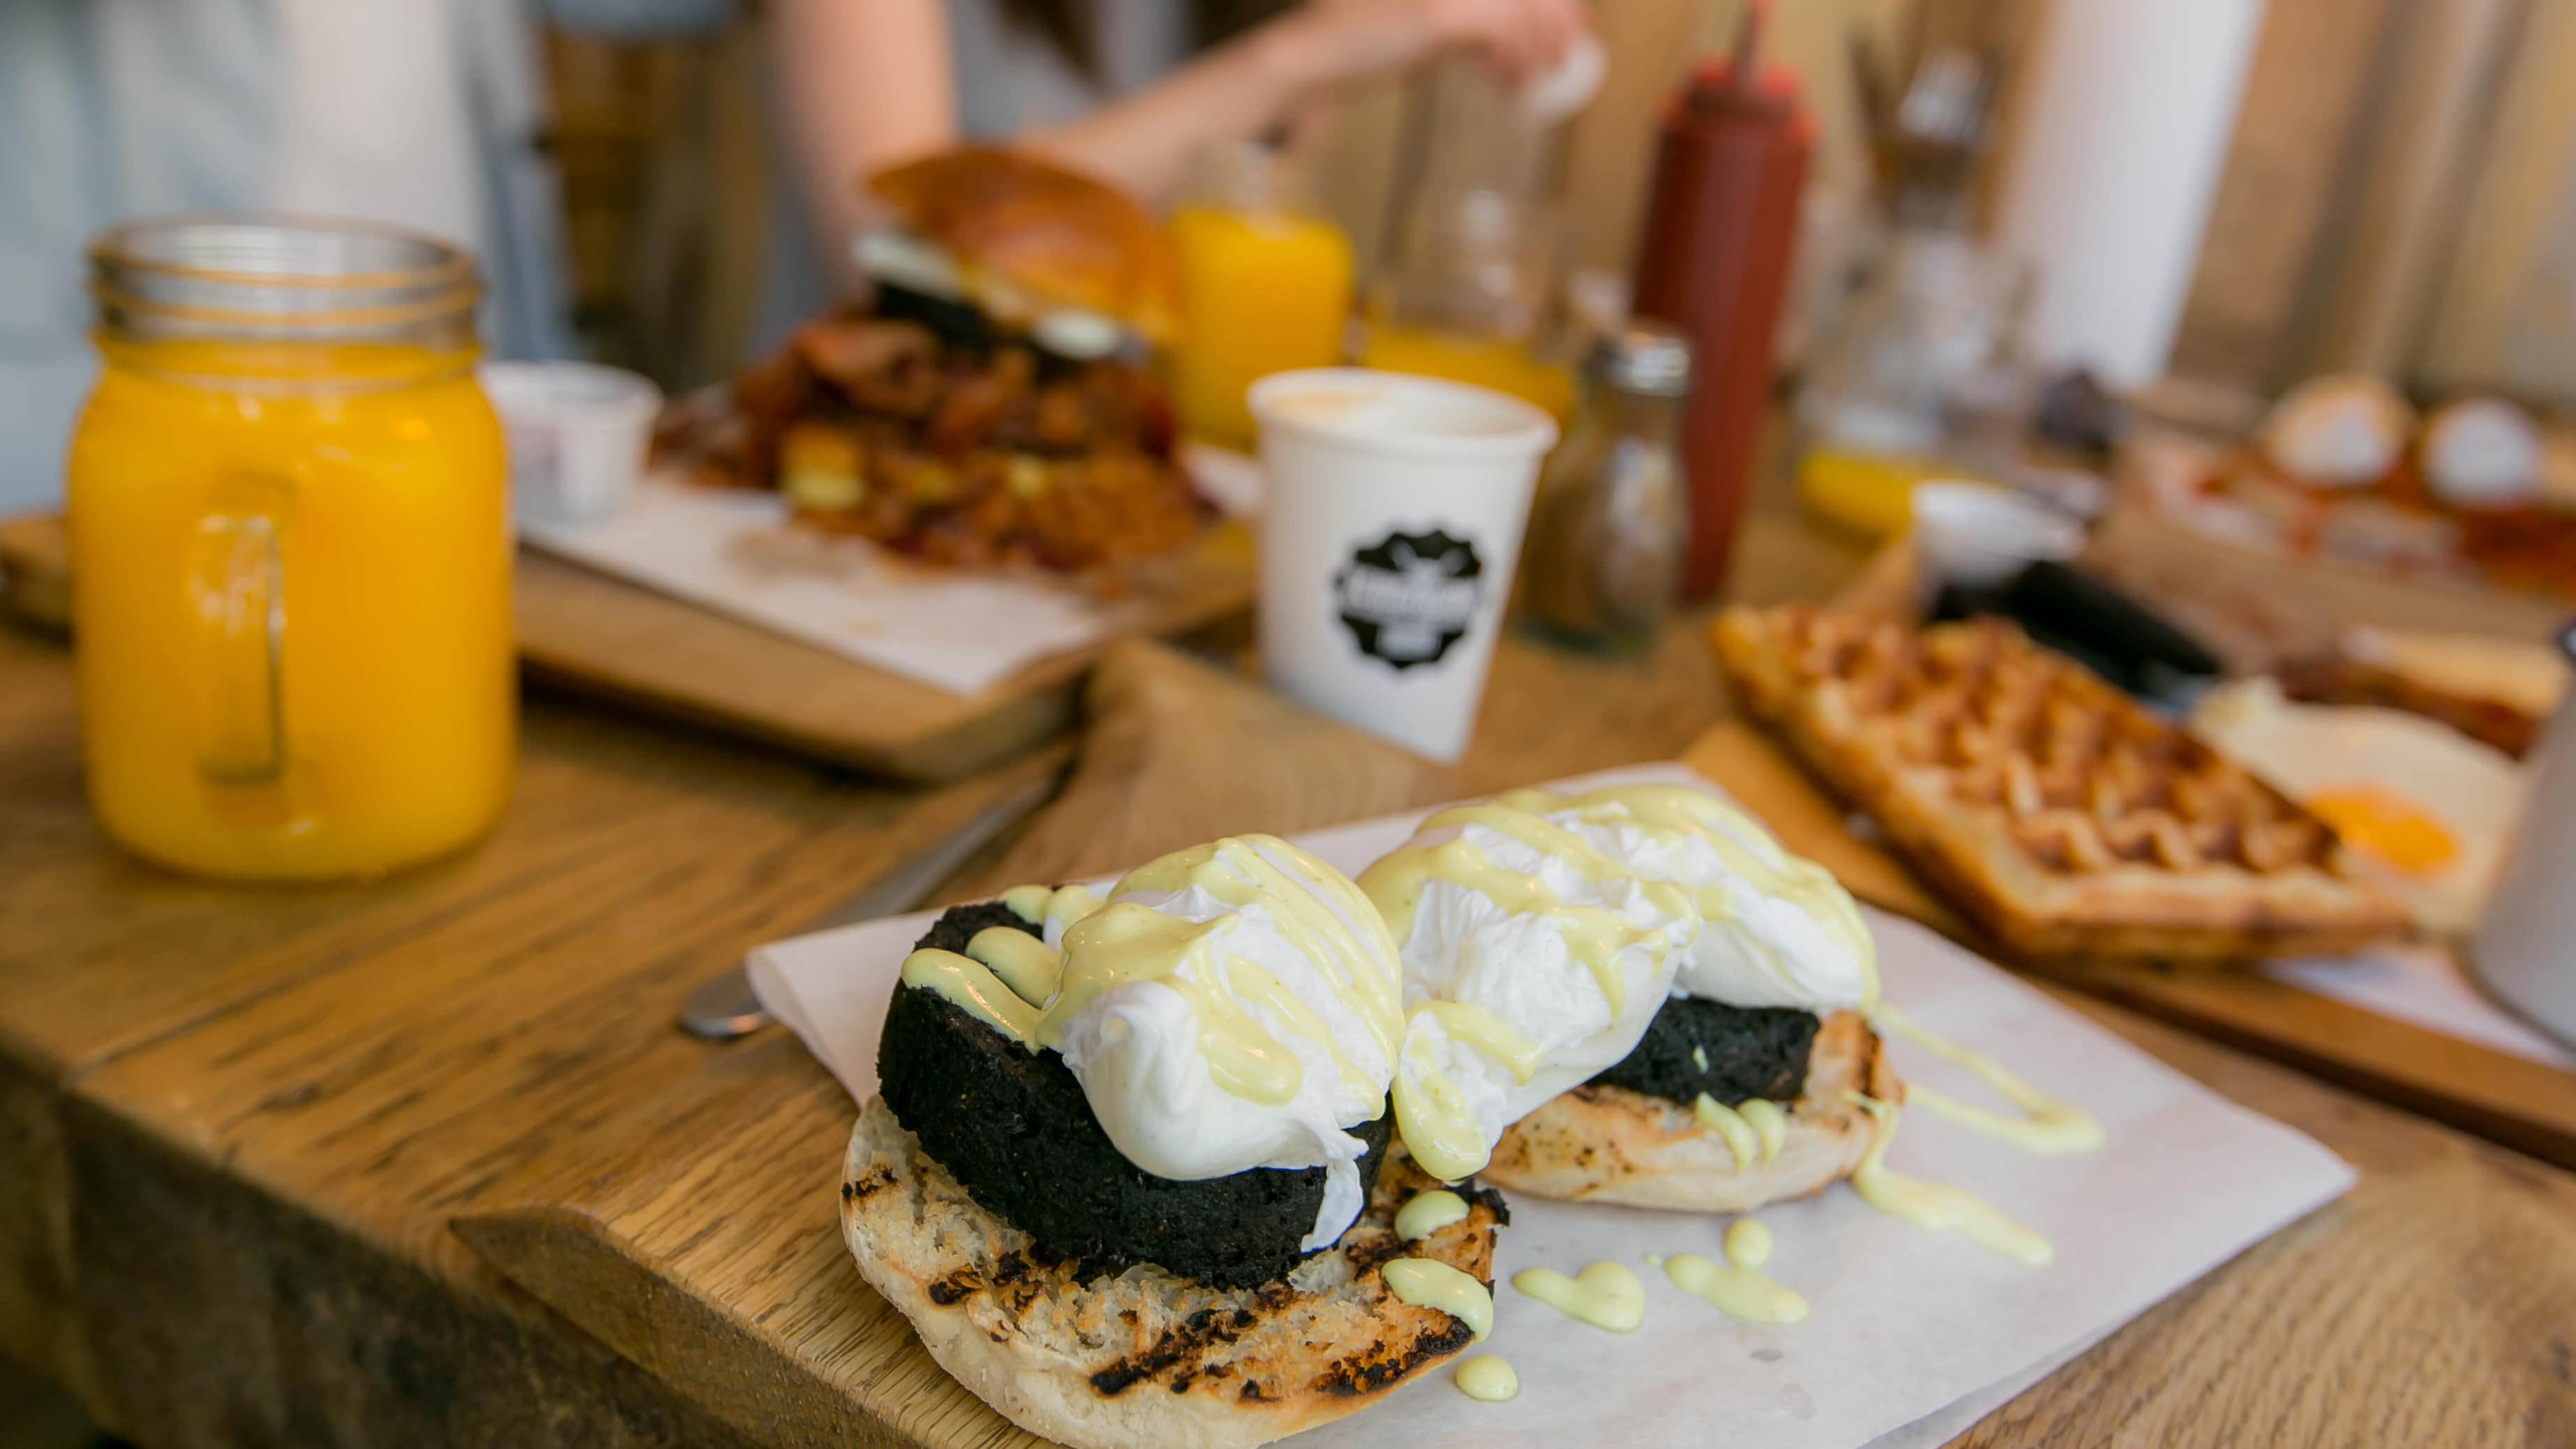 Black Pudding Benedict on table in front of other breakfasts and drinks